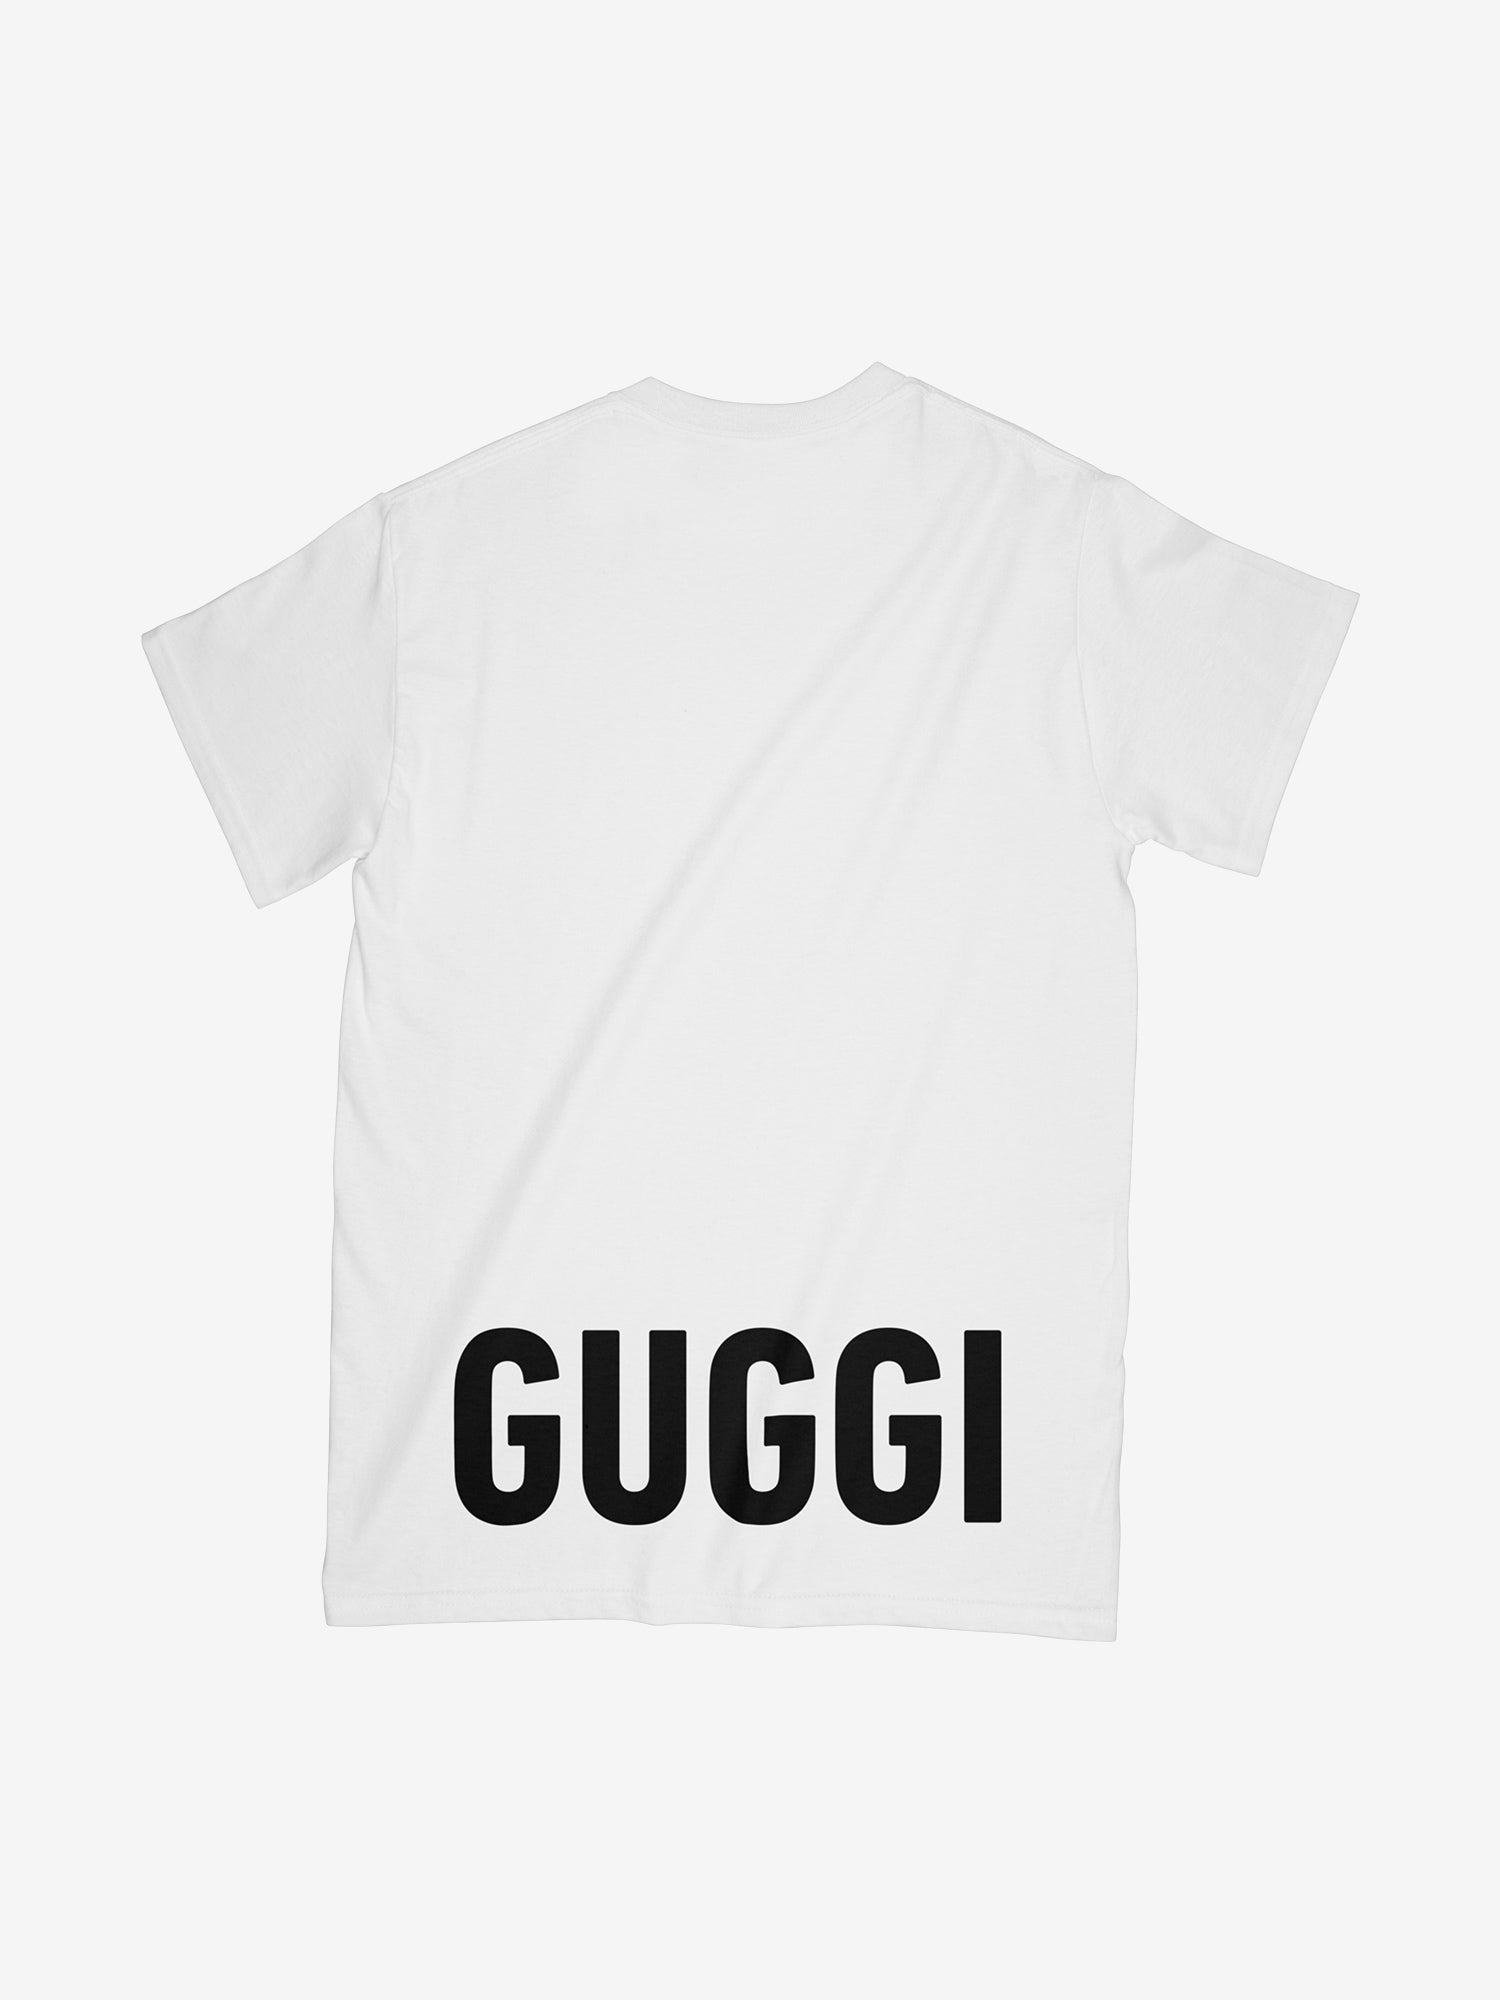 Happy Guggi Tee - Unisex